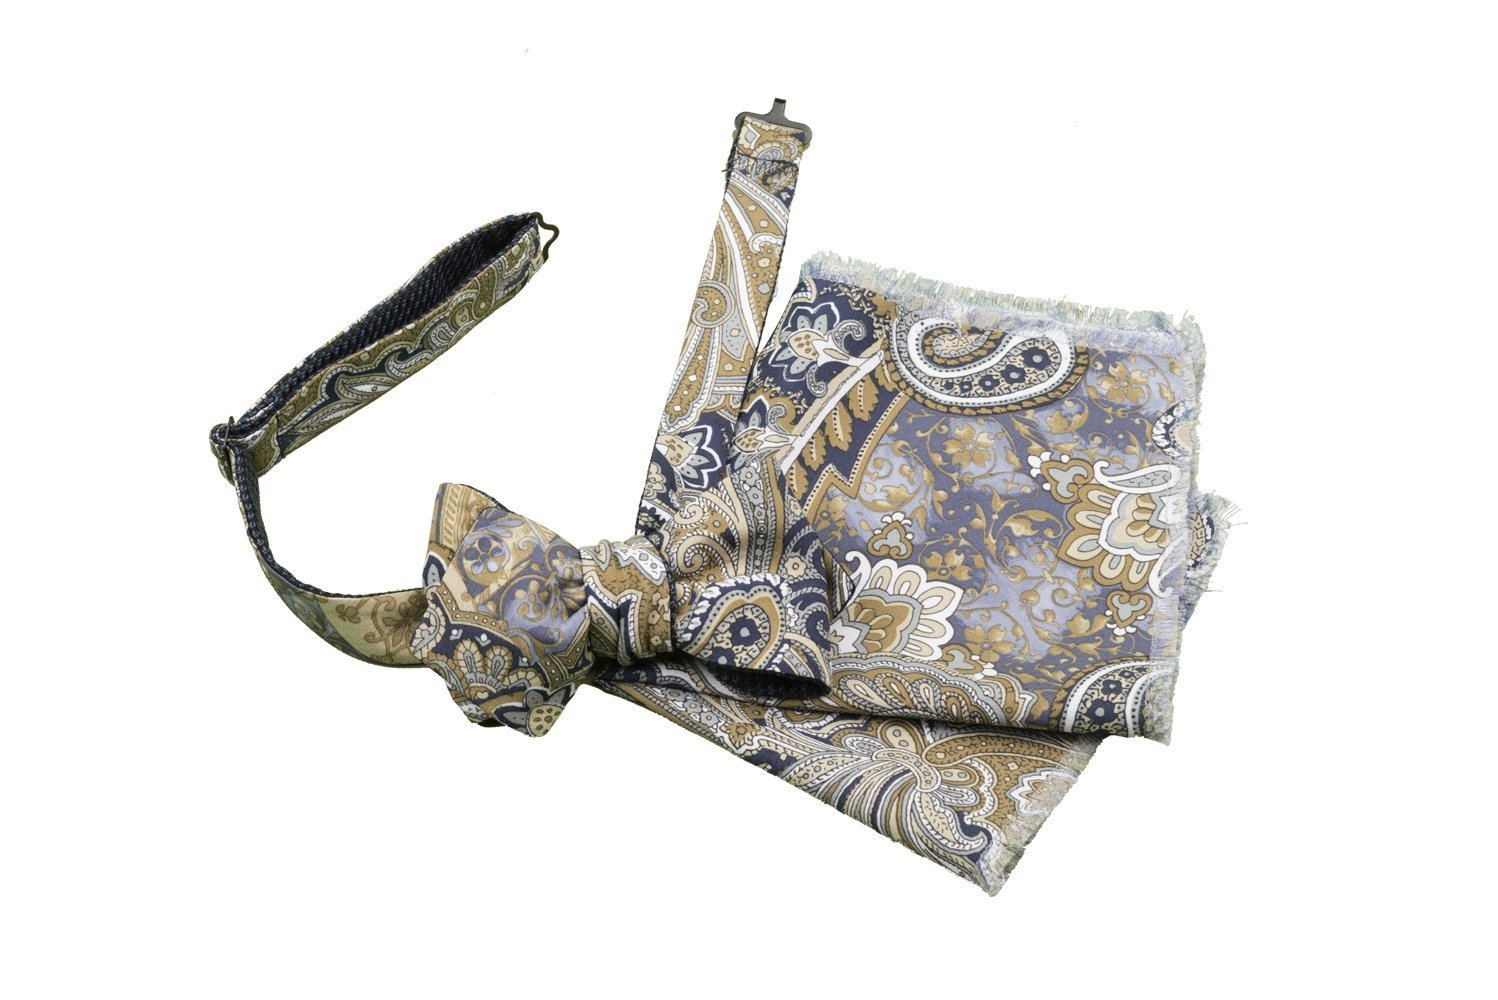 Bow Tie, Self Tie, Double Sided, Reversible, Pocket Square, Set, Men, Boy, Adjustable, Hook, Silk, Wool, Blue, Beige, Floral Print, Brown, One Size, Made In Italy, Handmade by Old Fashion Sartoria, Florence, Italy